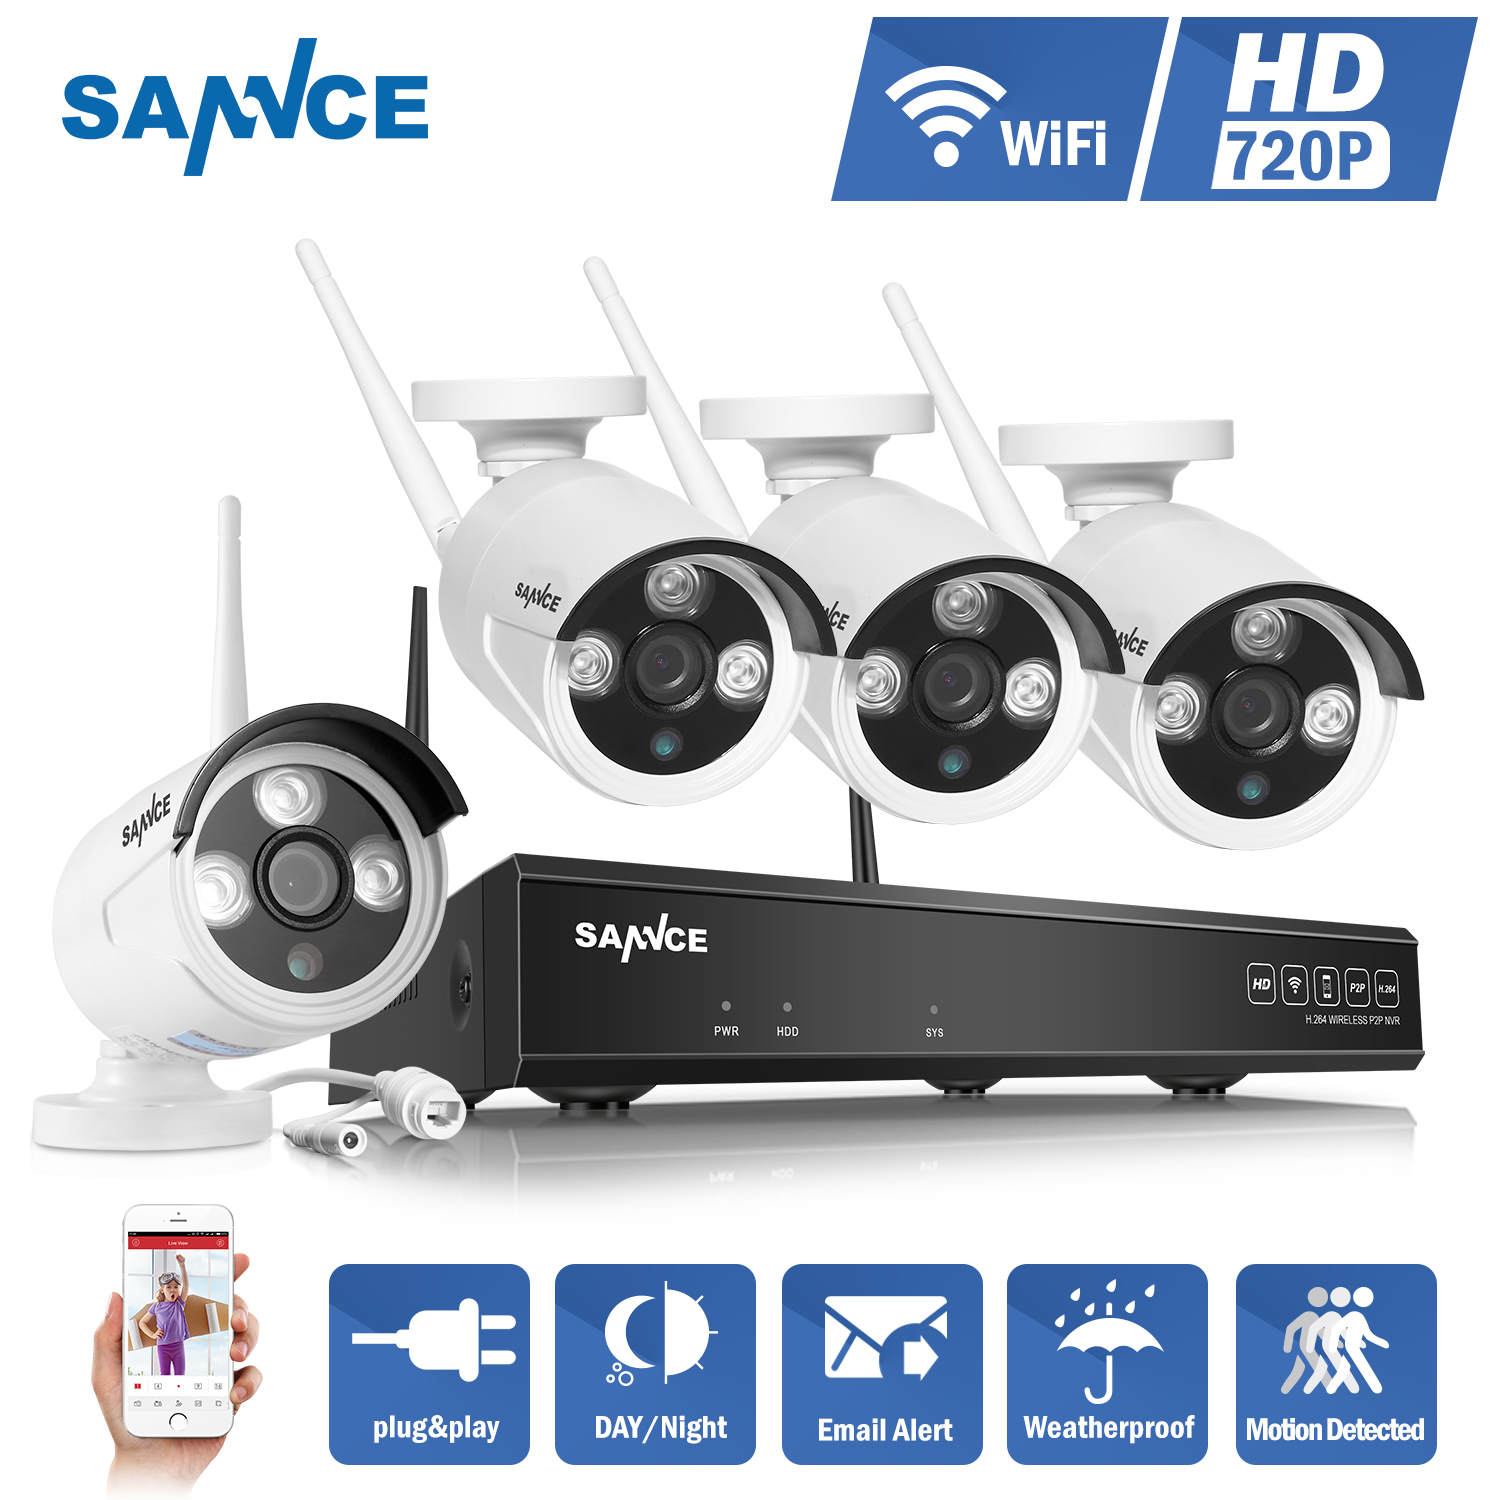 SANNCE 4CH 720P WIFI CCTV System HDMI NVR 4PCS 1.0 MP IR Outdoor P2P Home Wireless IP Camera Security System Surveillance Kit NO Hard Drive Disk